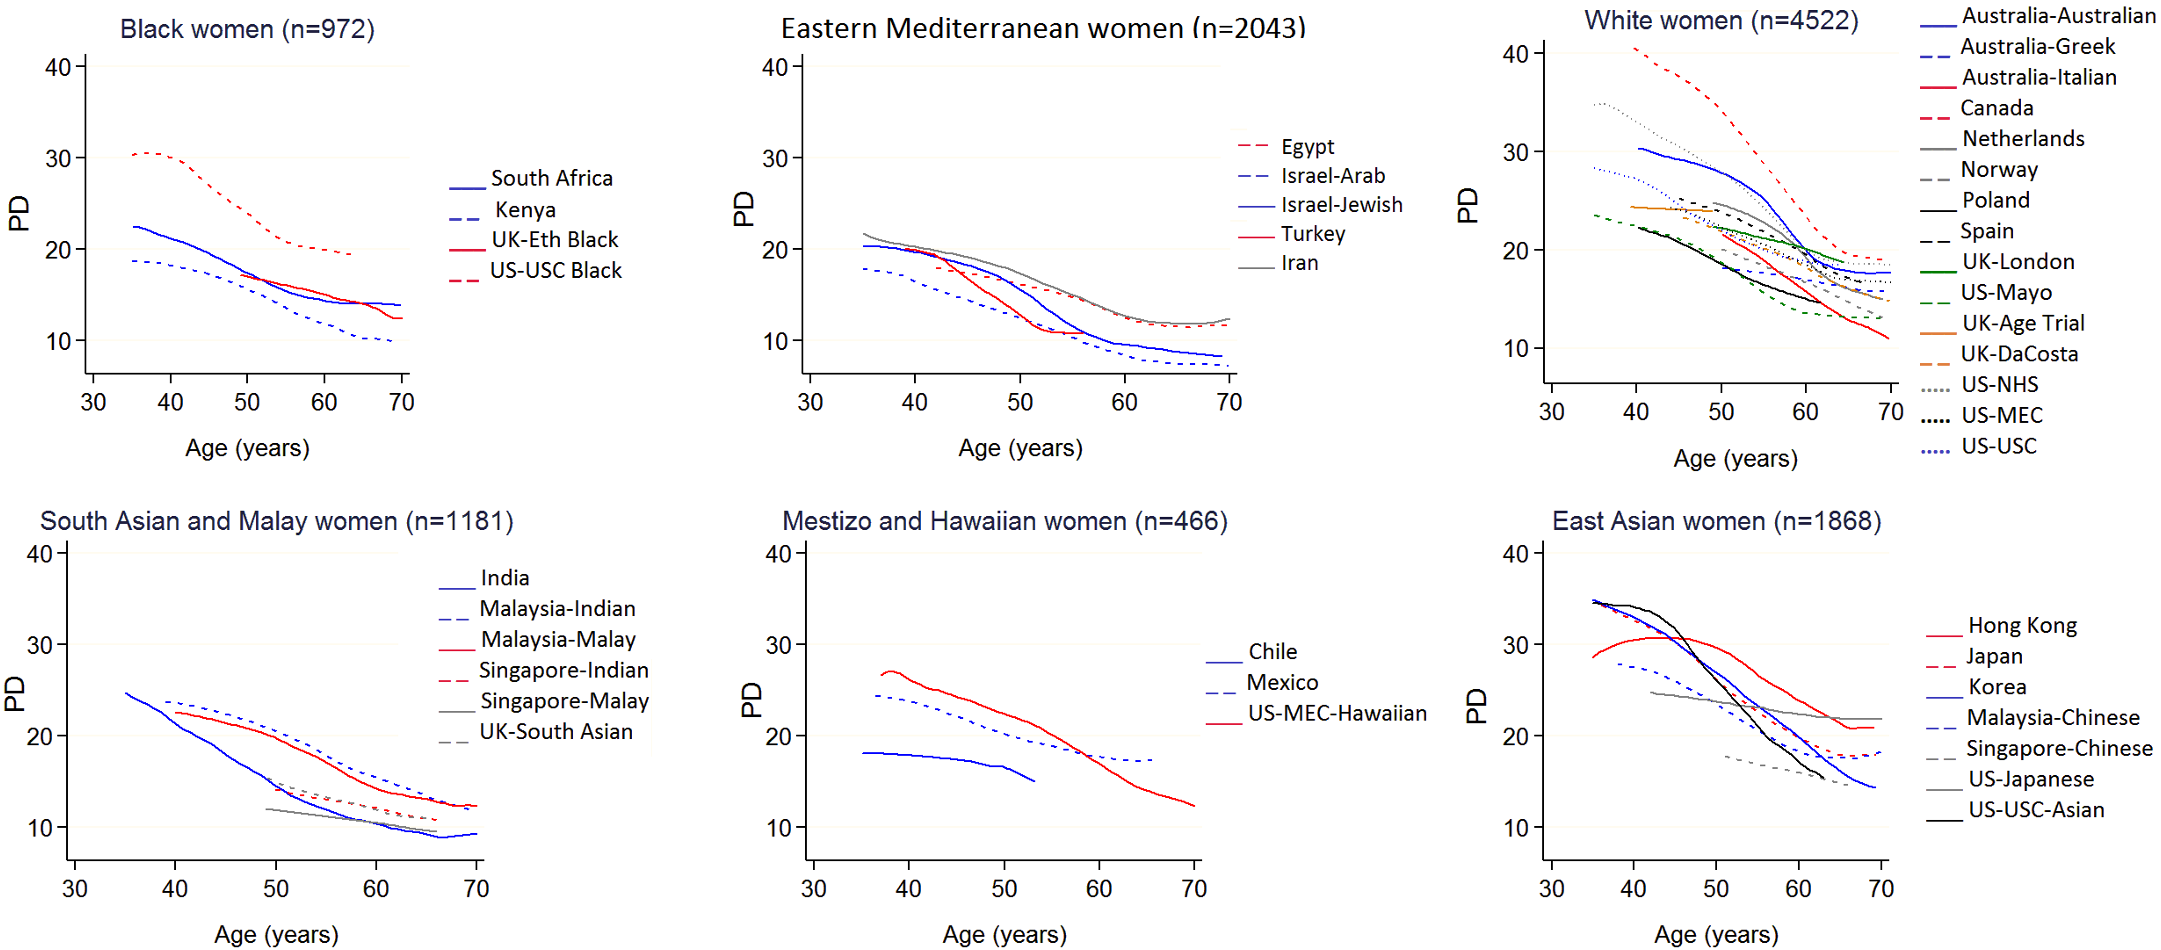 Polynomial smoothed curves of the crude association of percent mammographic density with age, for each population group within broad ethnic groups.